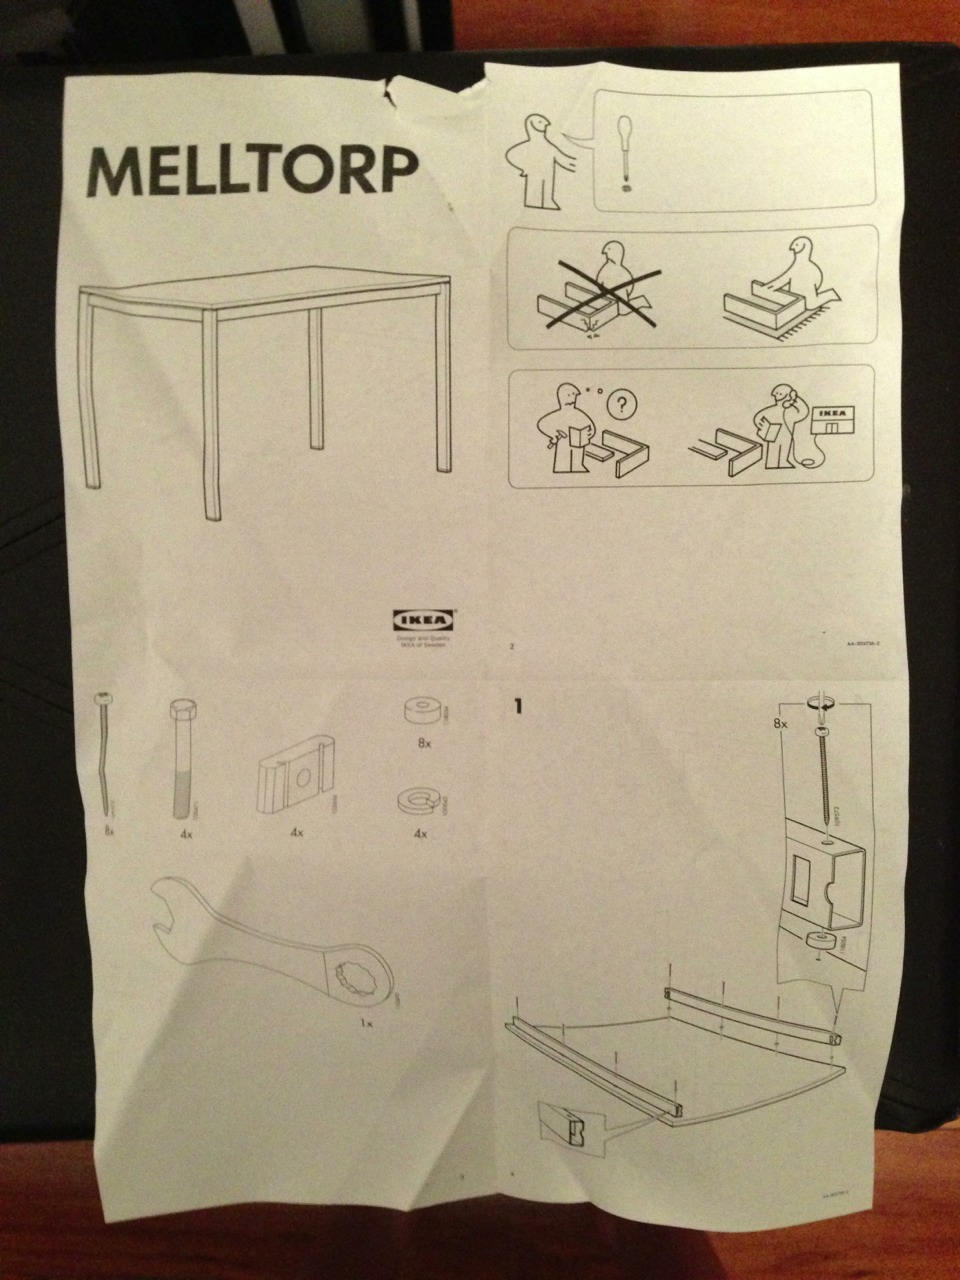 I just realized ikea instructions don't have any words on them. That way, there's nothing to translate!